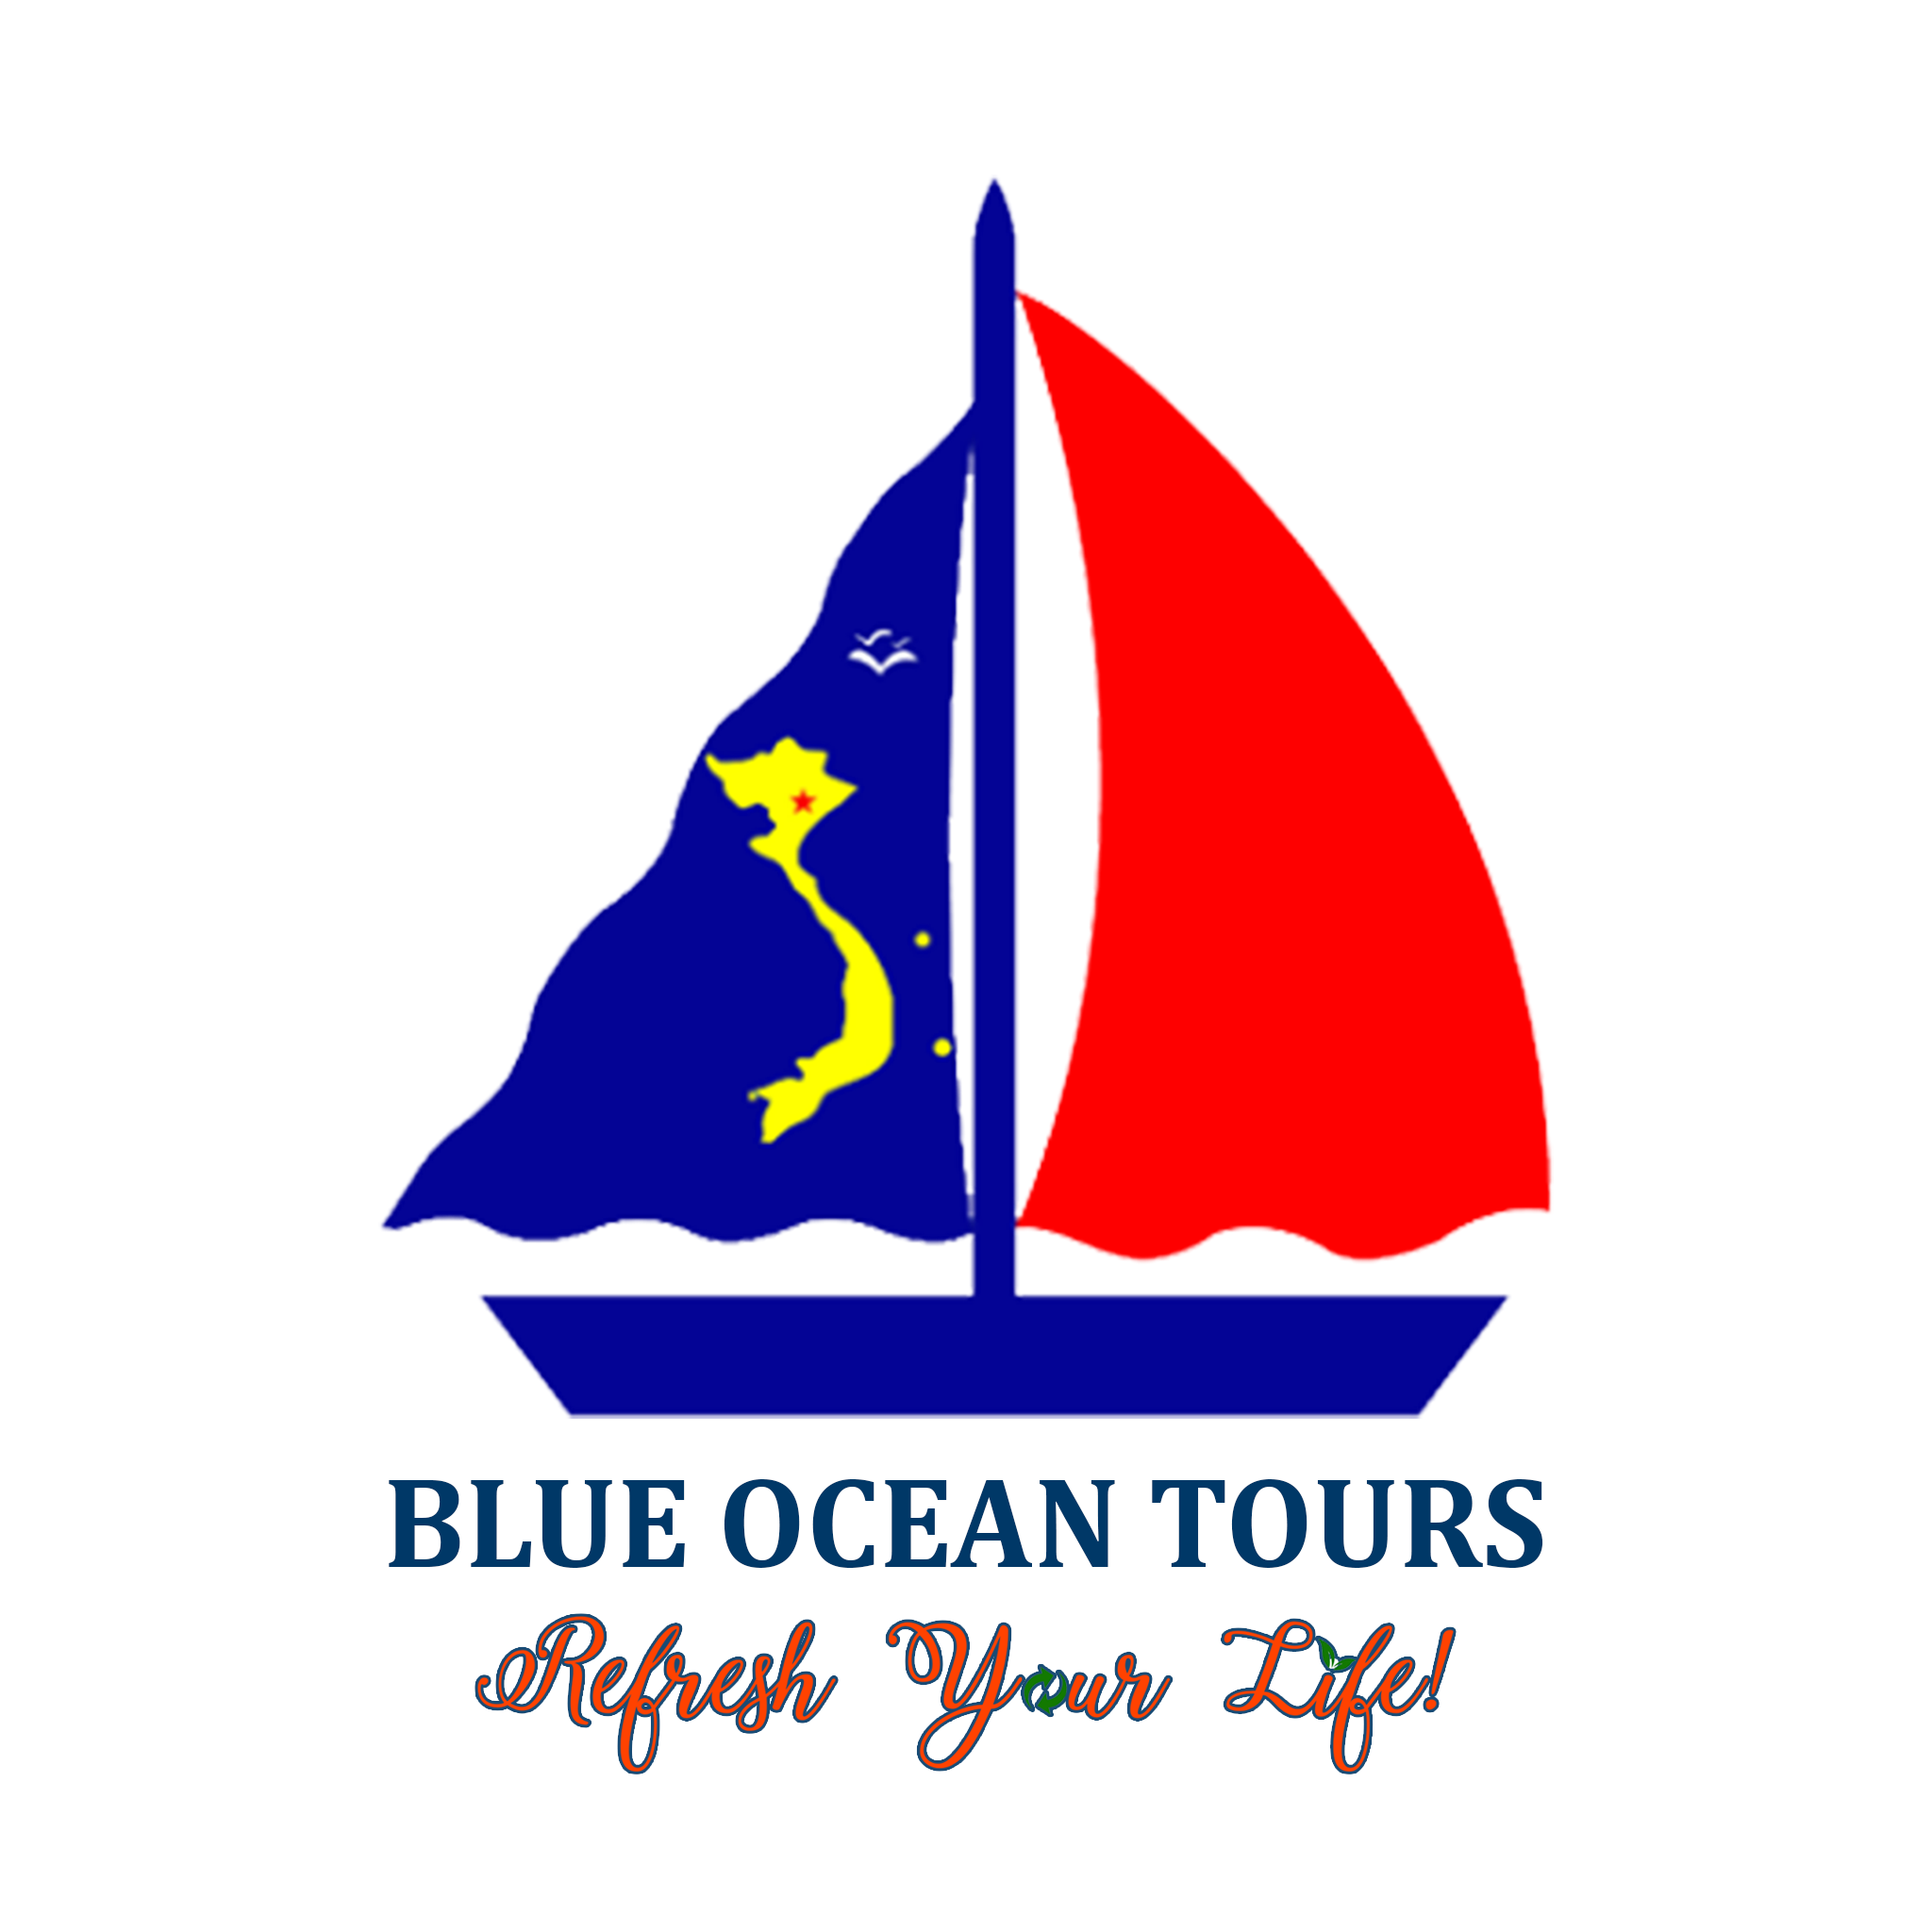 Logo BlueOceanTours and slogan Refresh Your Life